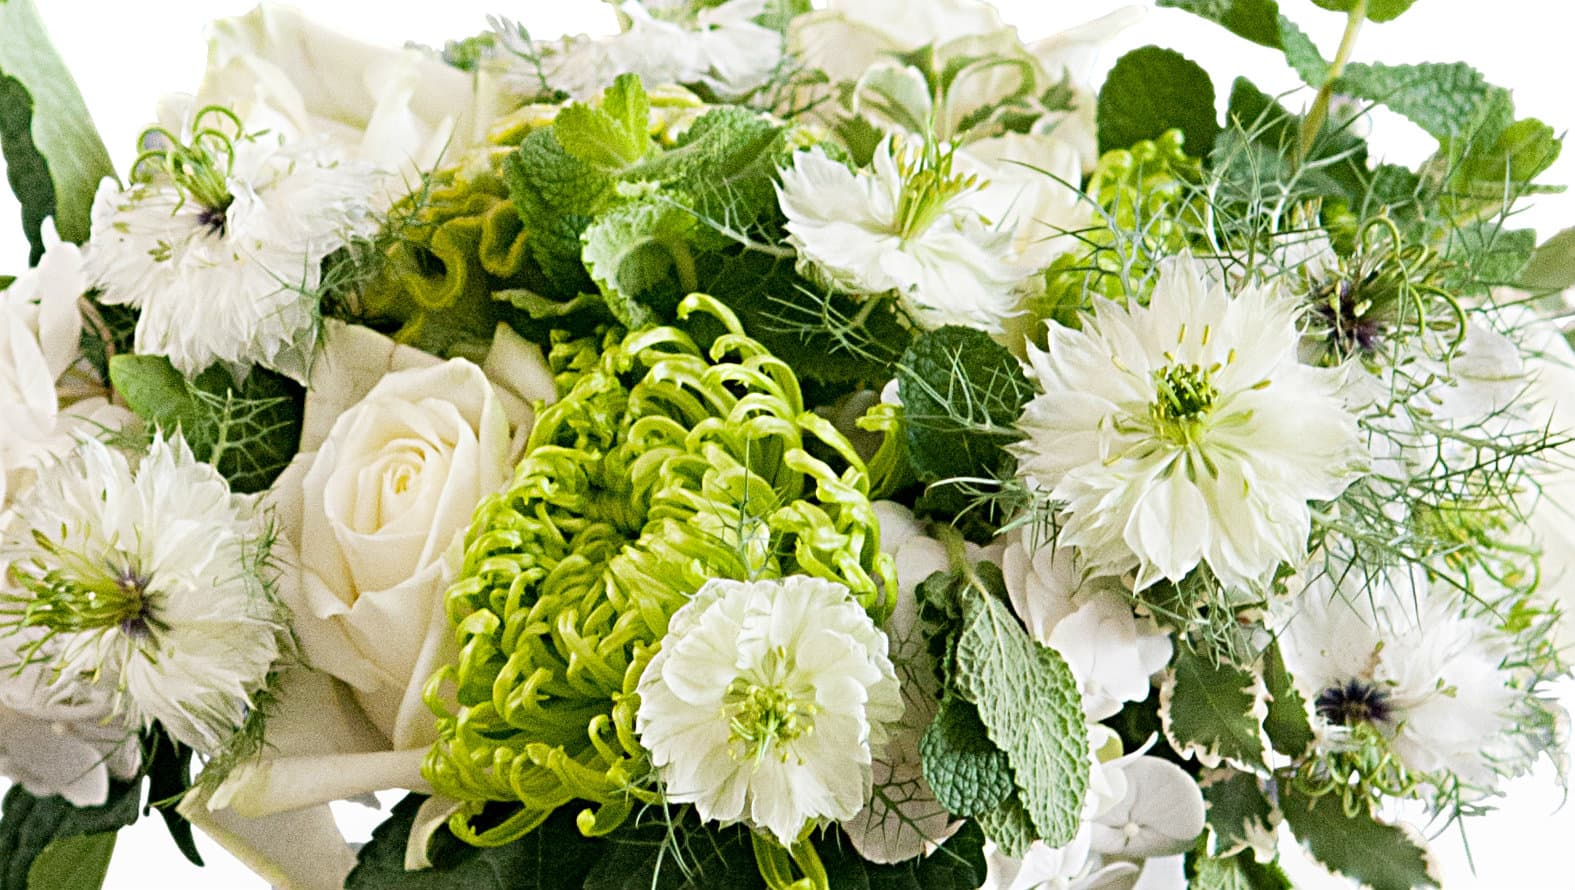 Funeral wreaths london funeral flowers funeral wreaths izmirmasajfo